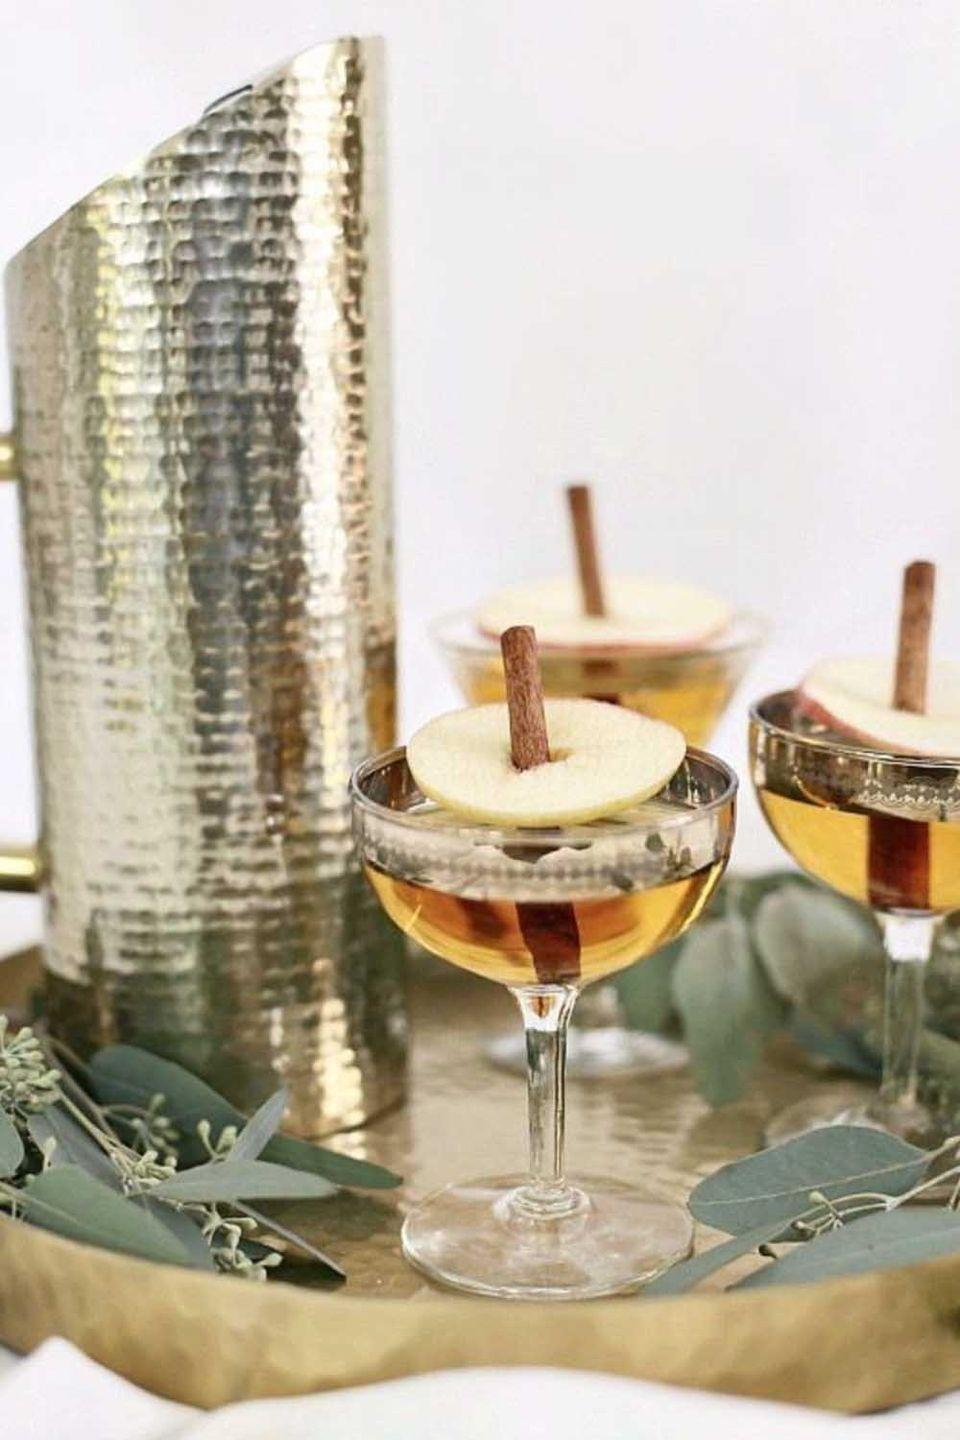 """<p>This drink uses apple juice instead of cider to keep it clear and amber, so serve it in your prettiest glasses to show off its autumn hue.</p><p><a class=""""link rapid-noclick-resp"""" href=""""https://celebrationsathomeblog.com/apple-pie-cocktail/"""" rel=""""nofollow noopener"""" target=""""_blank"""" data-ylk=""""slk:GET THE RECIPE"""">GET THE RECIPE</a></p>"""